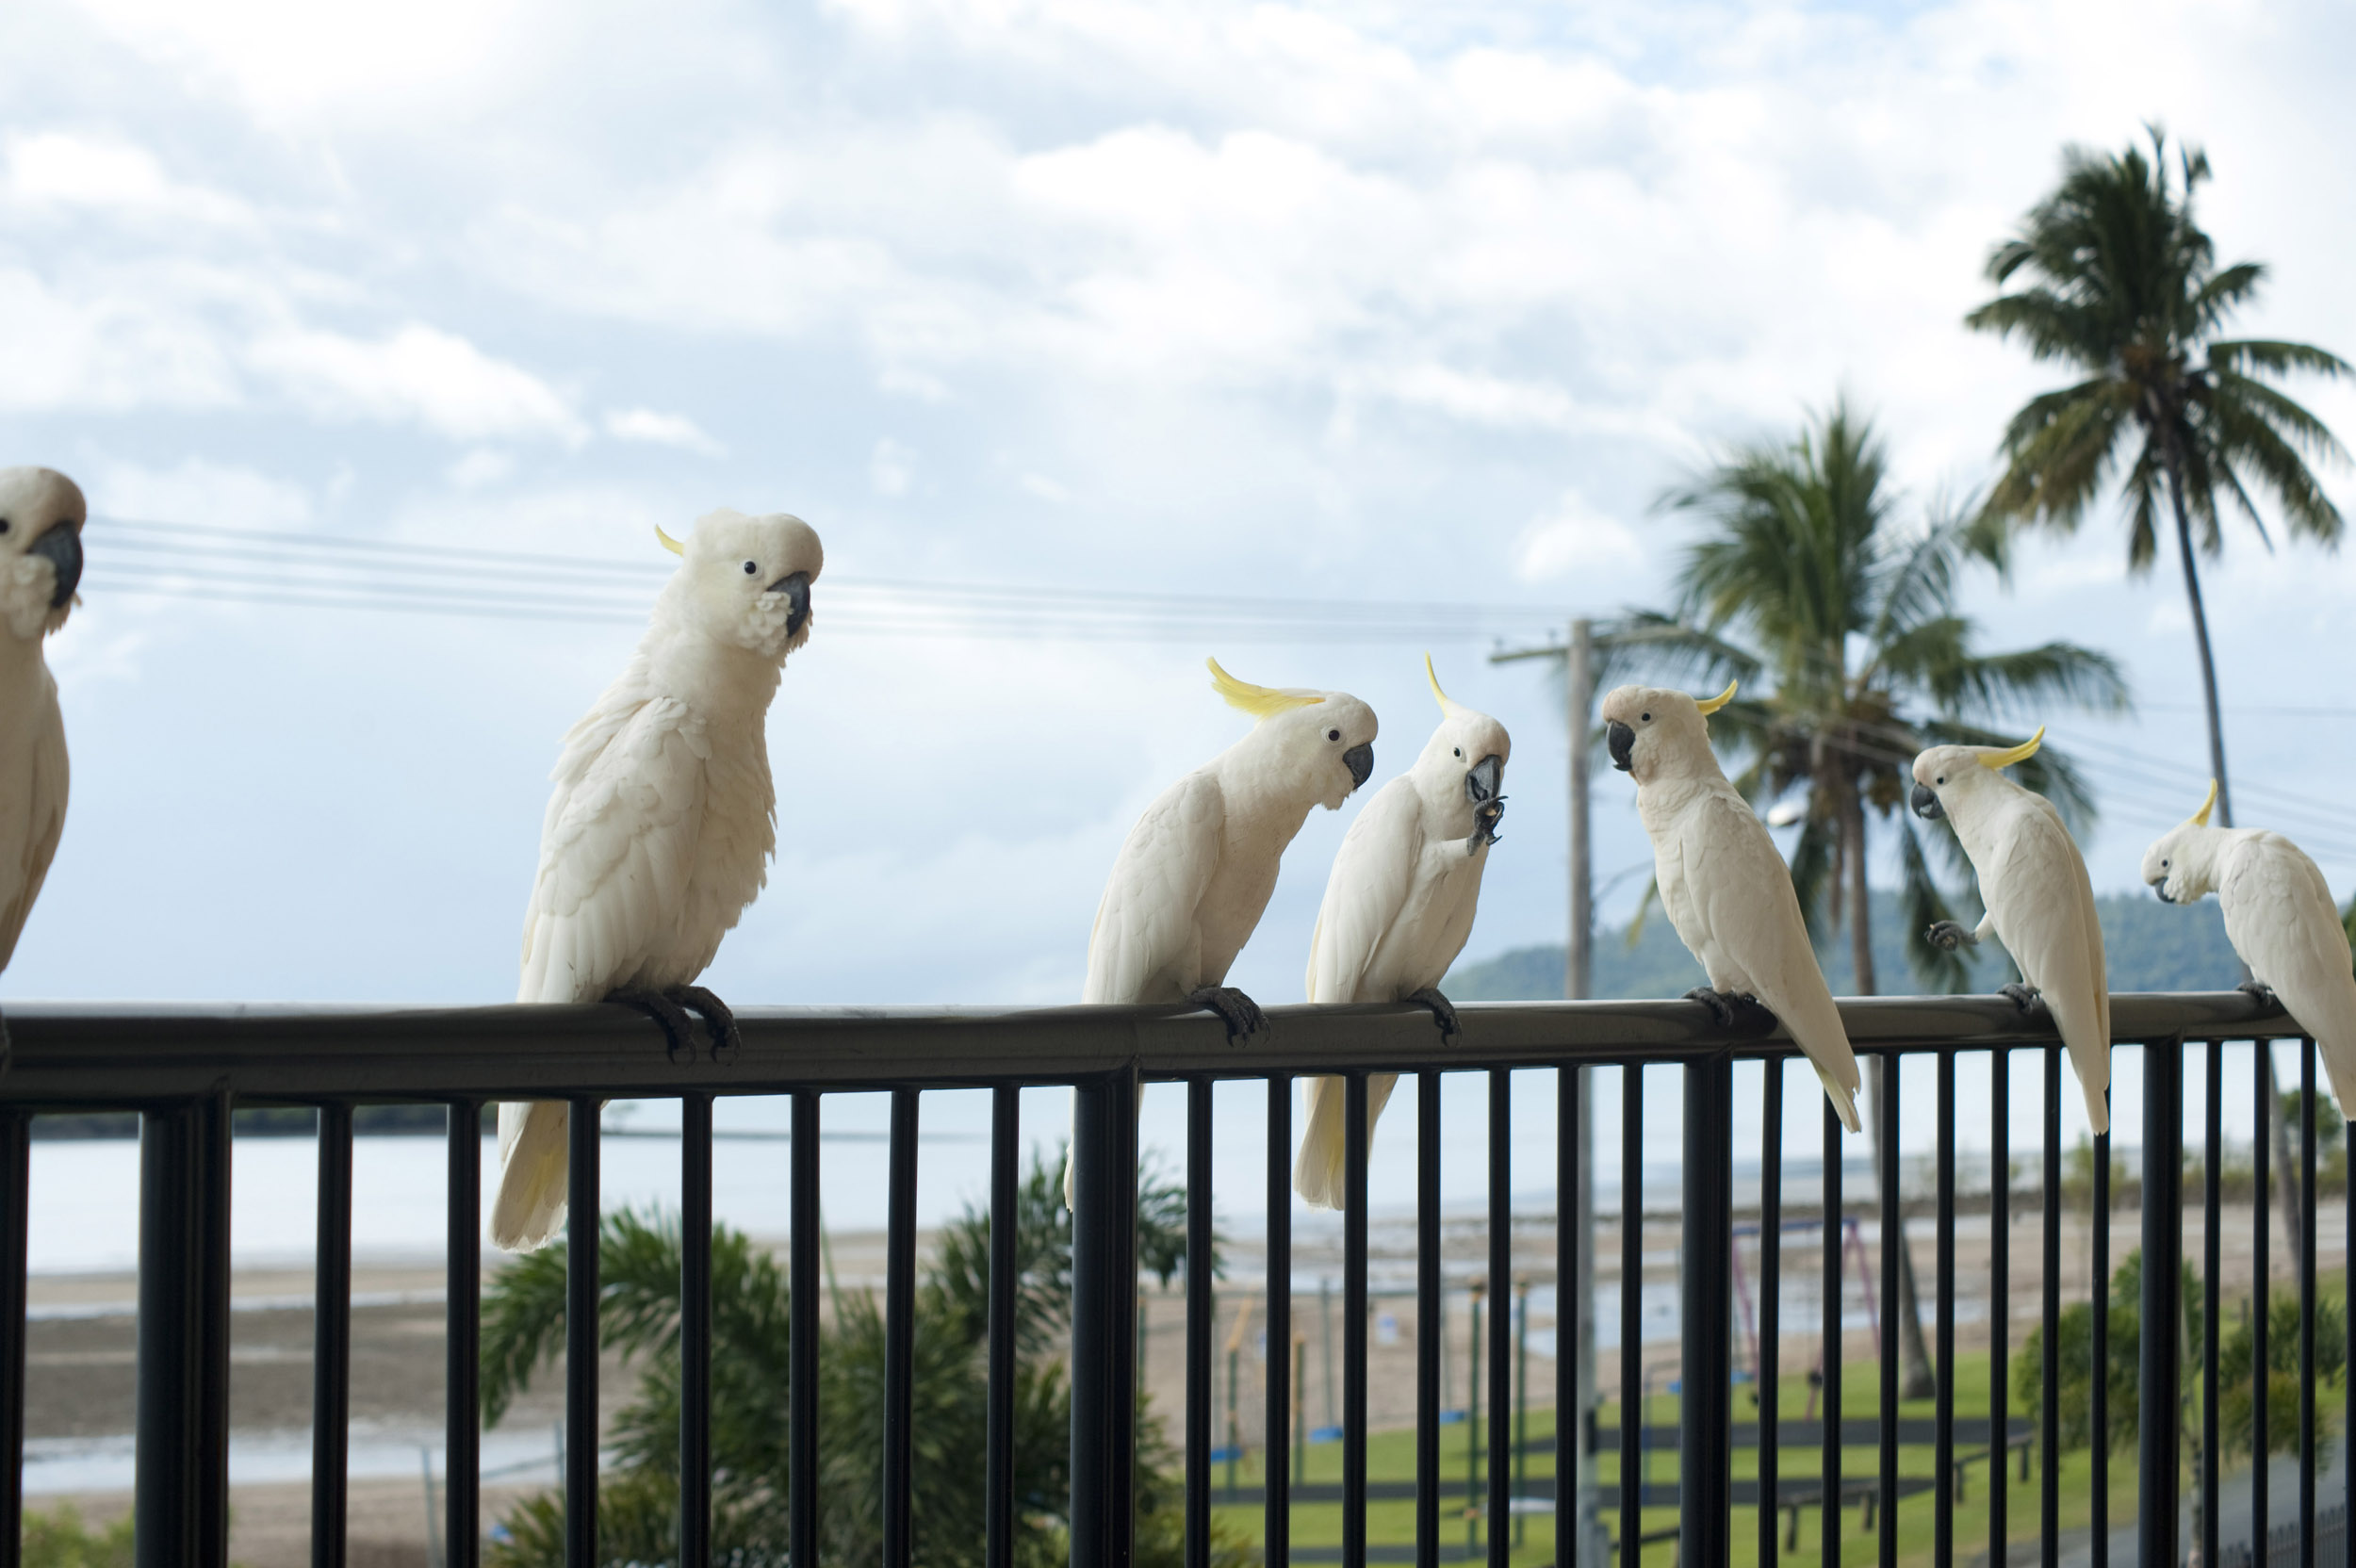 a line of sulphur crested cockatoos perched on a balcony railing